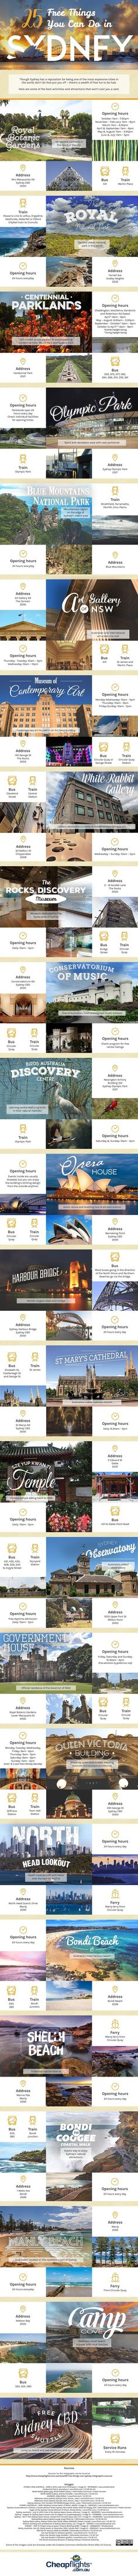 25 Free Things You Can Do In Sydney - Infographic